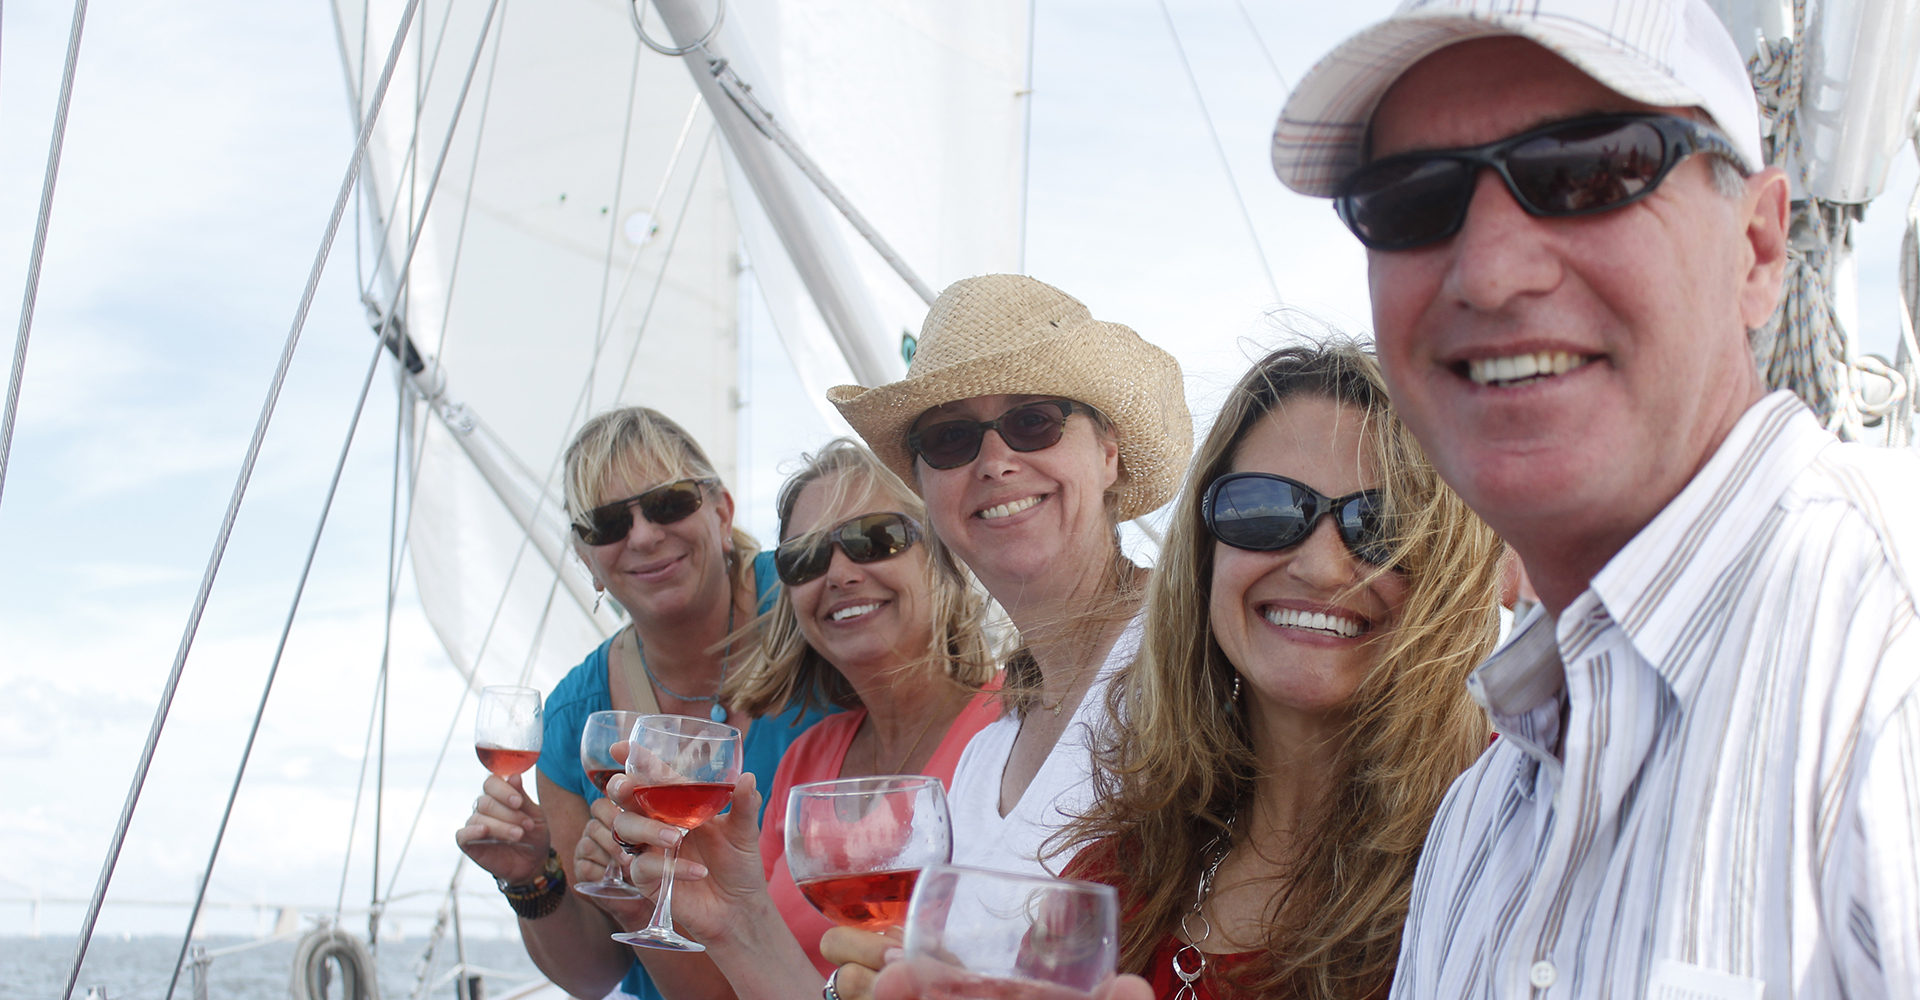 Guests with sunglasses and smiles enjoying glasses of wine on the boat